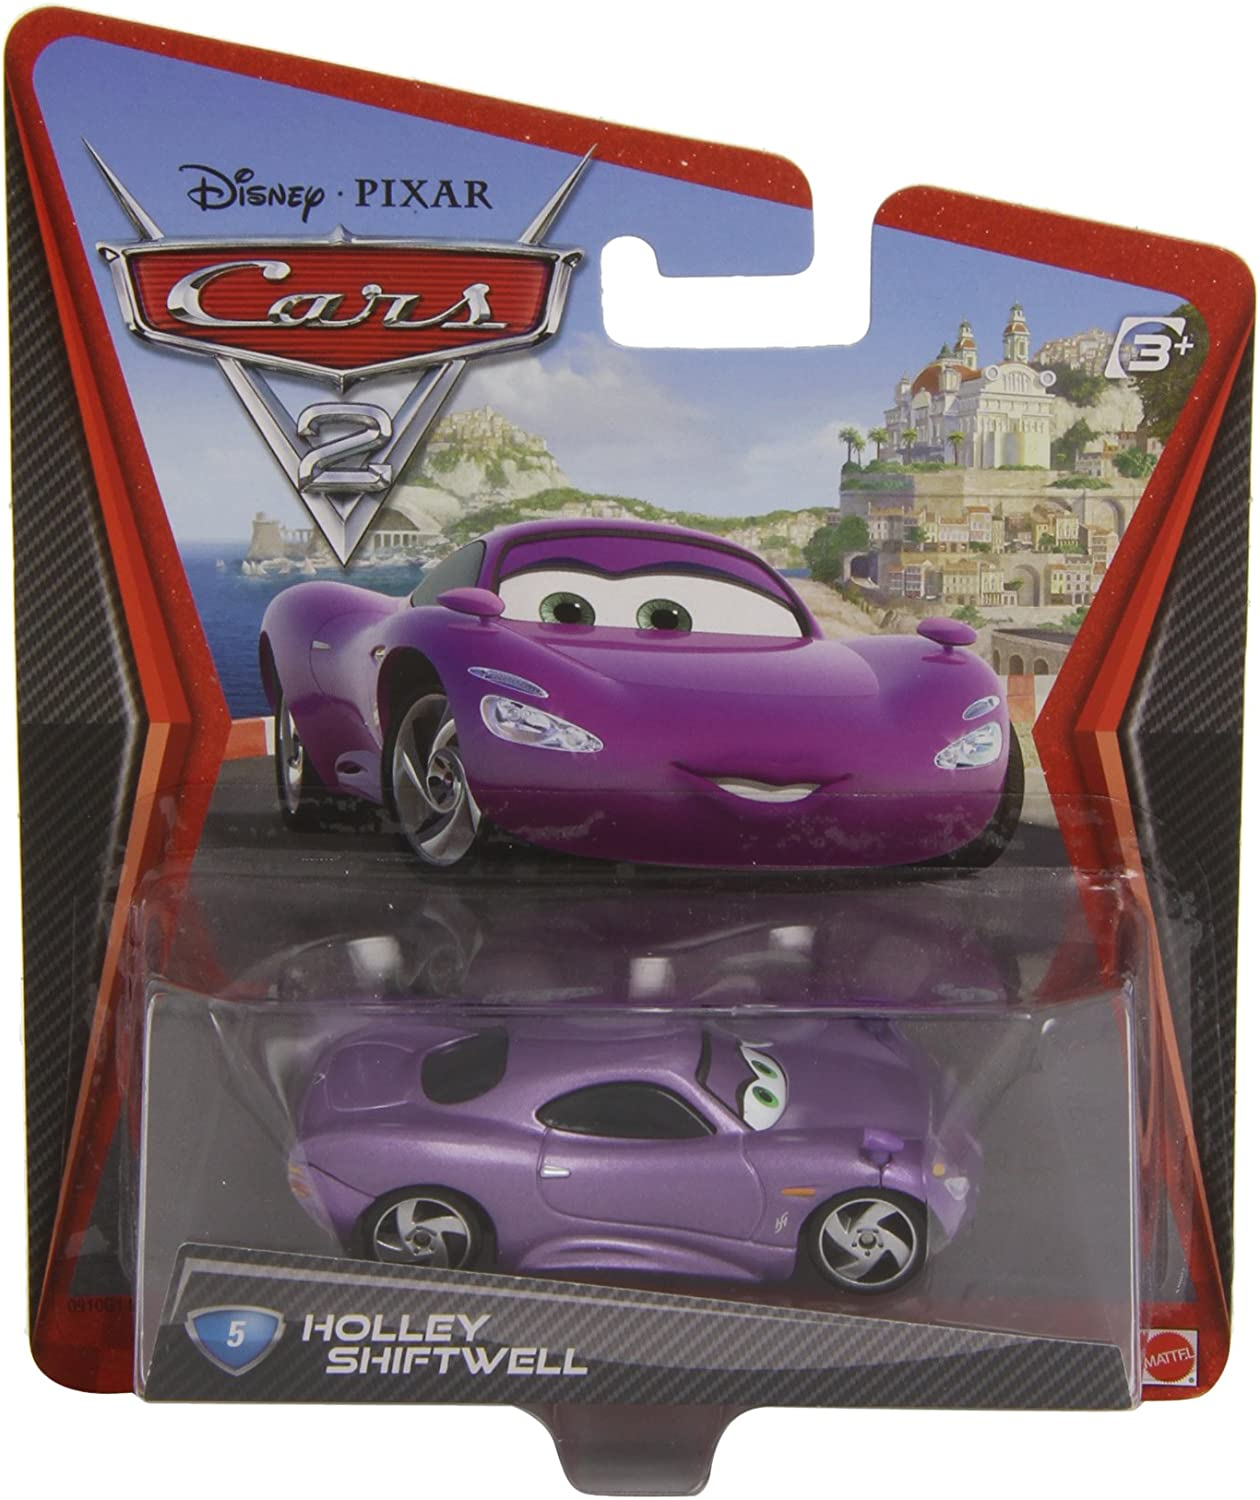 Amazon Com Disney Pixar Cars 2 Die Cast Holley Shiftwell 5 1 55 Scale Toys Games